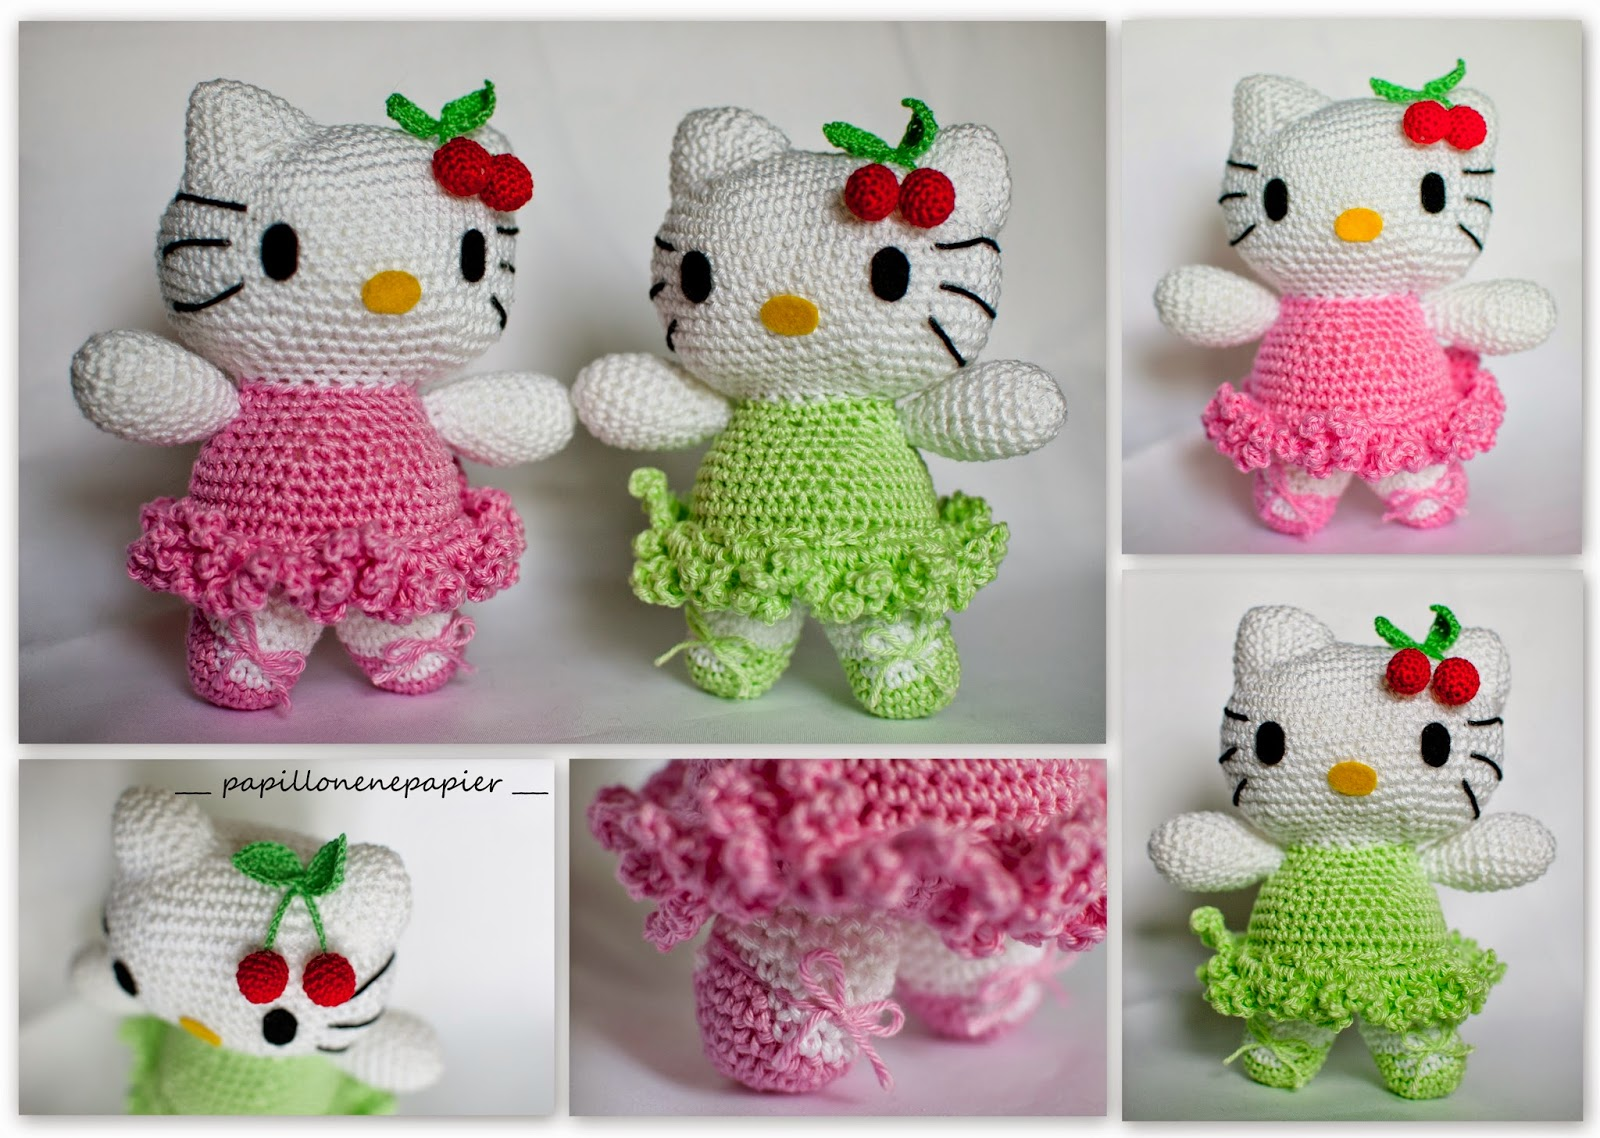 Papillon en papier: Hello Kitty! crochet ami